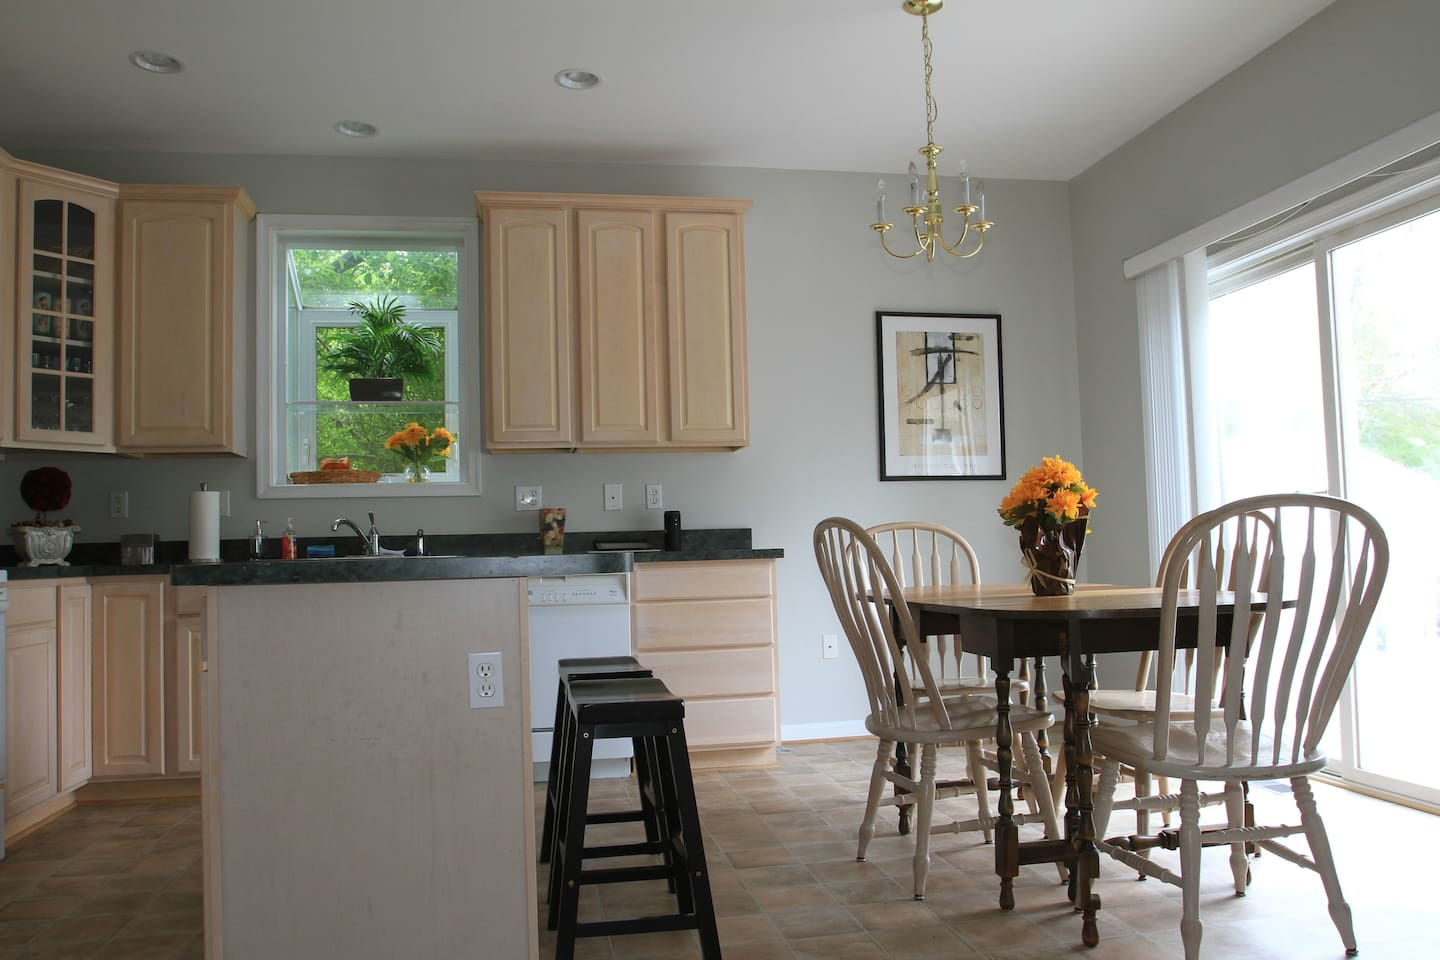 Beautiful open kitchen with 9' ceilings